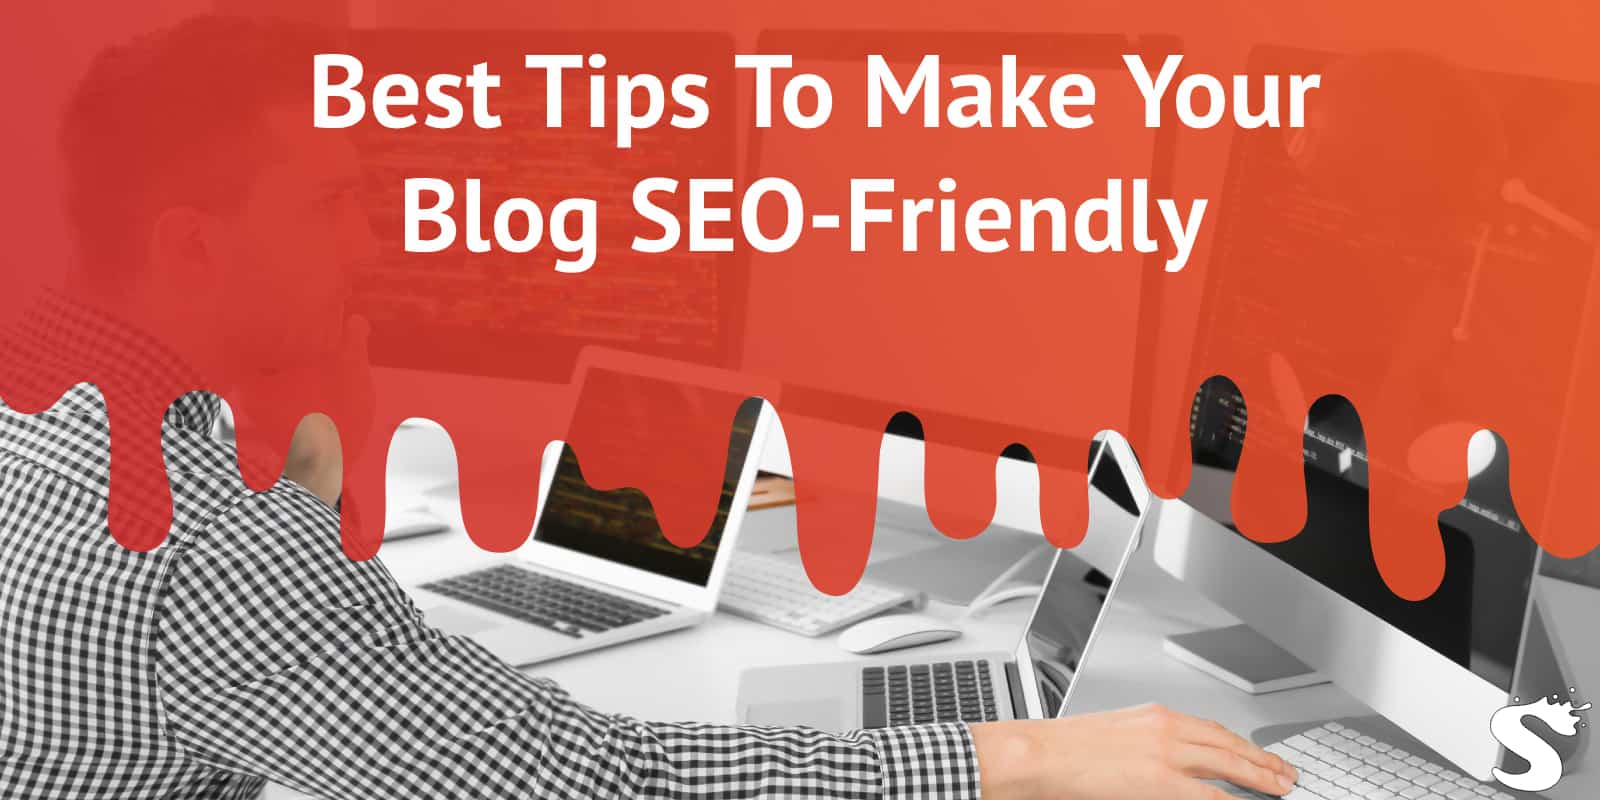 Tips For SEO Friendly Blog